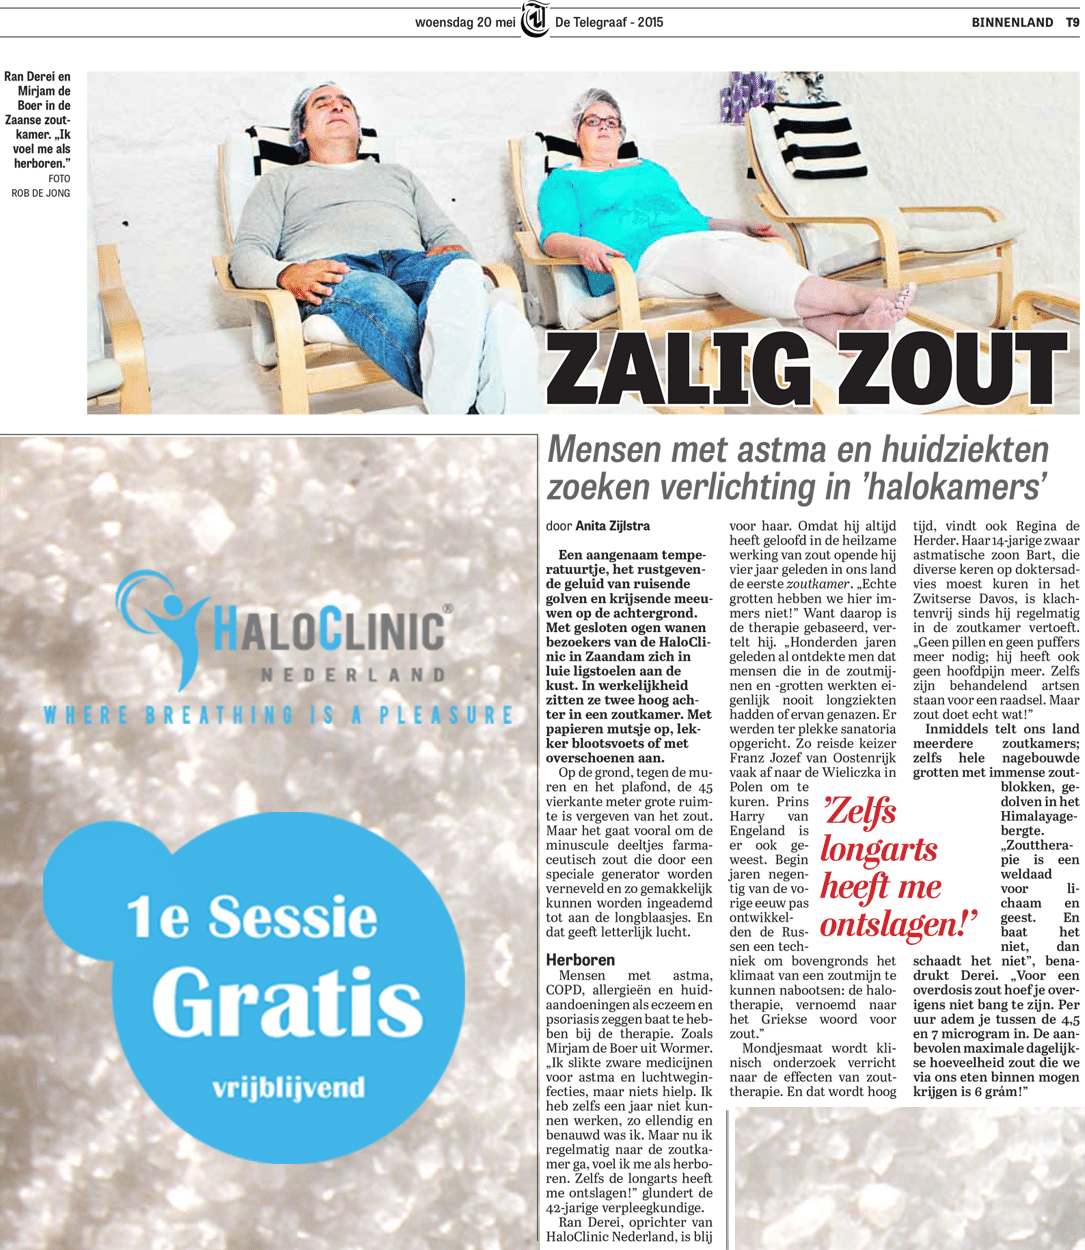 Haloclinic in de Telegraaf